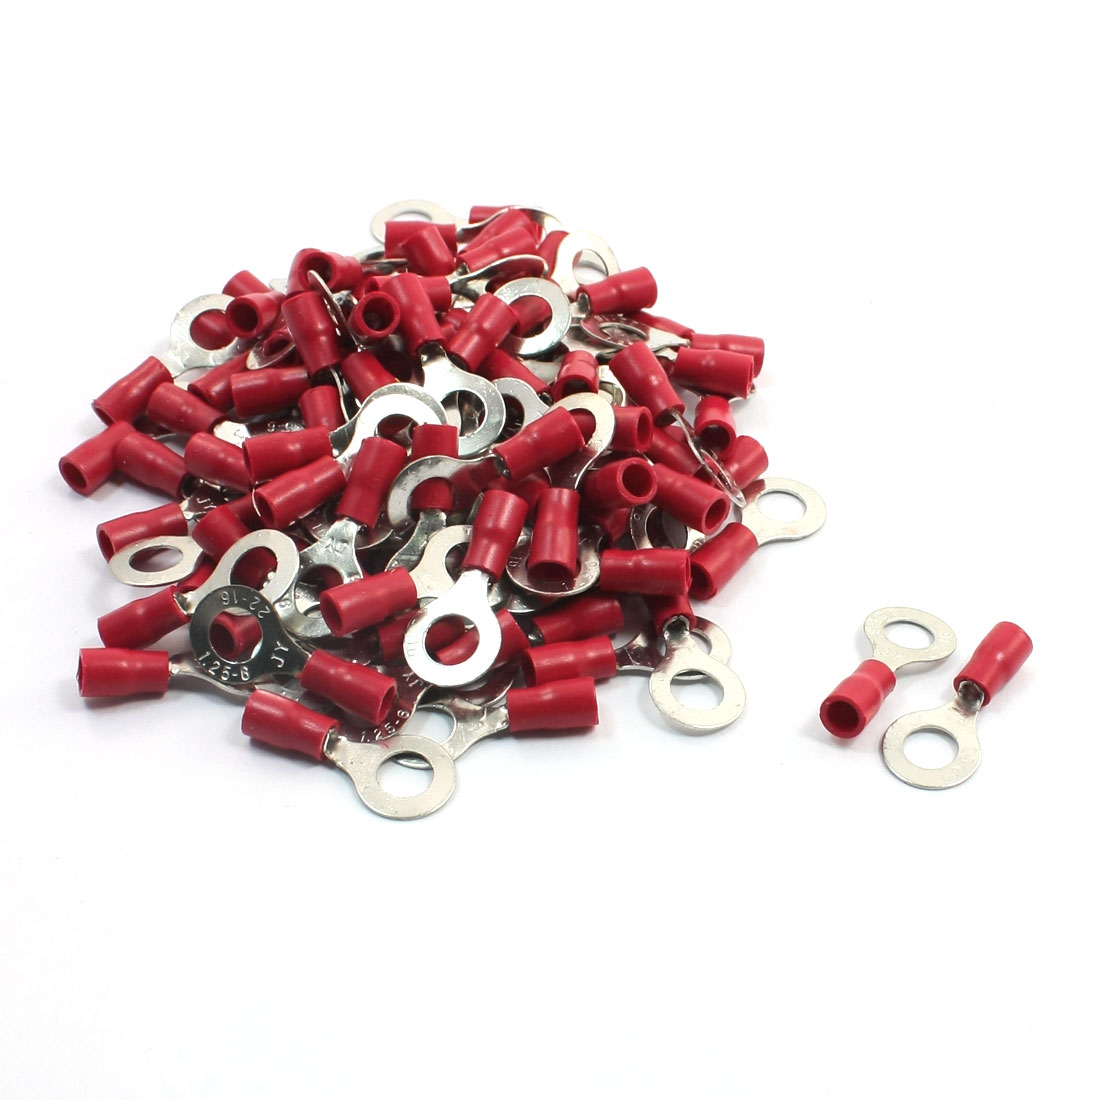 100 Pcs RV1.25-6 Pre-Insulate Ring Terminals Wire Connectors for AWG 22-16 Cable